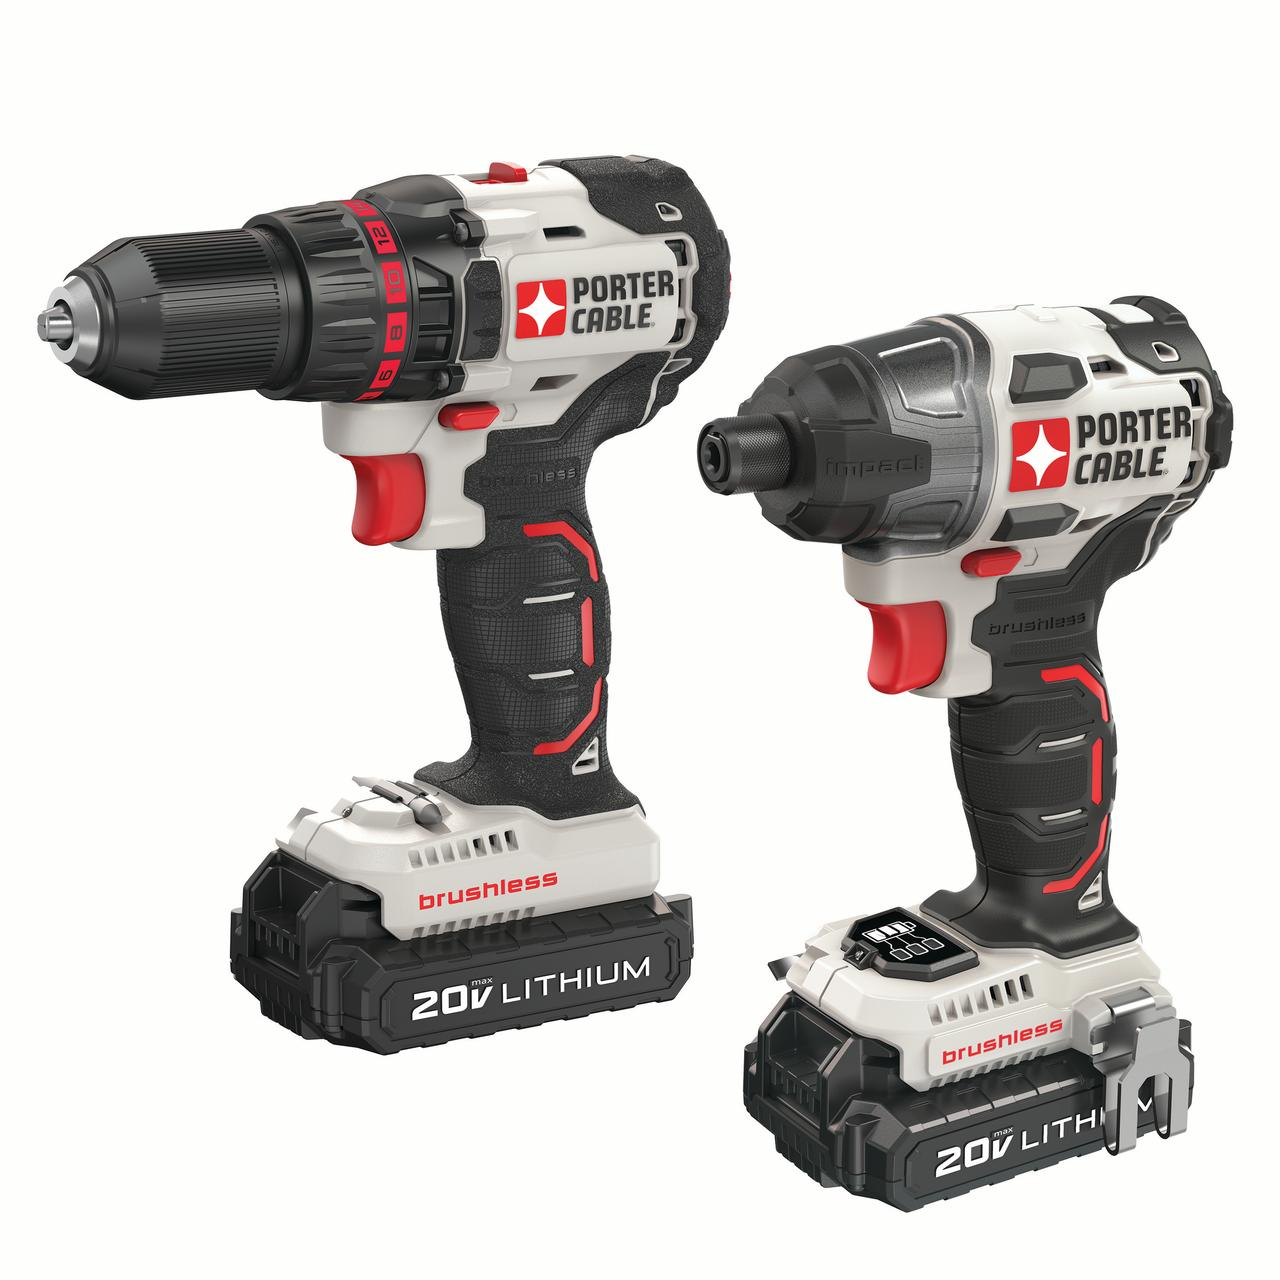 PORTER CABLE 20-Volt Max Lithium-Ion Brushless Cordless Drill And Impact Driver Combo Kit, PCCK618L2